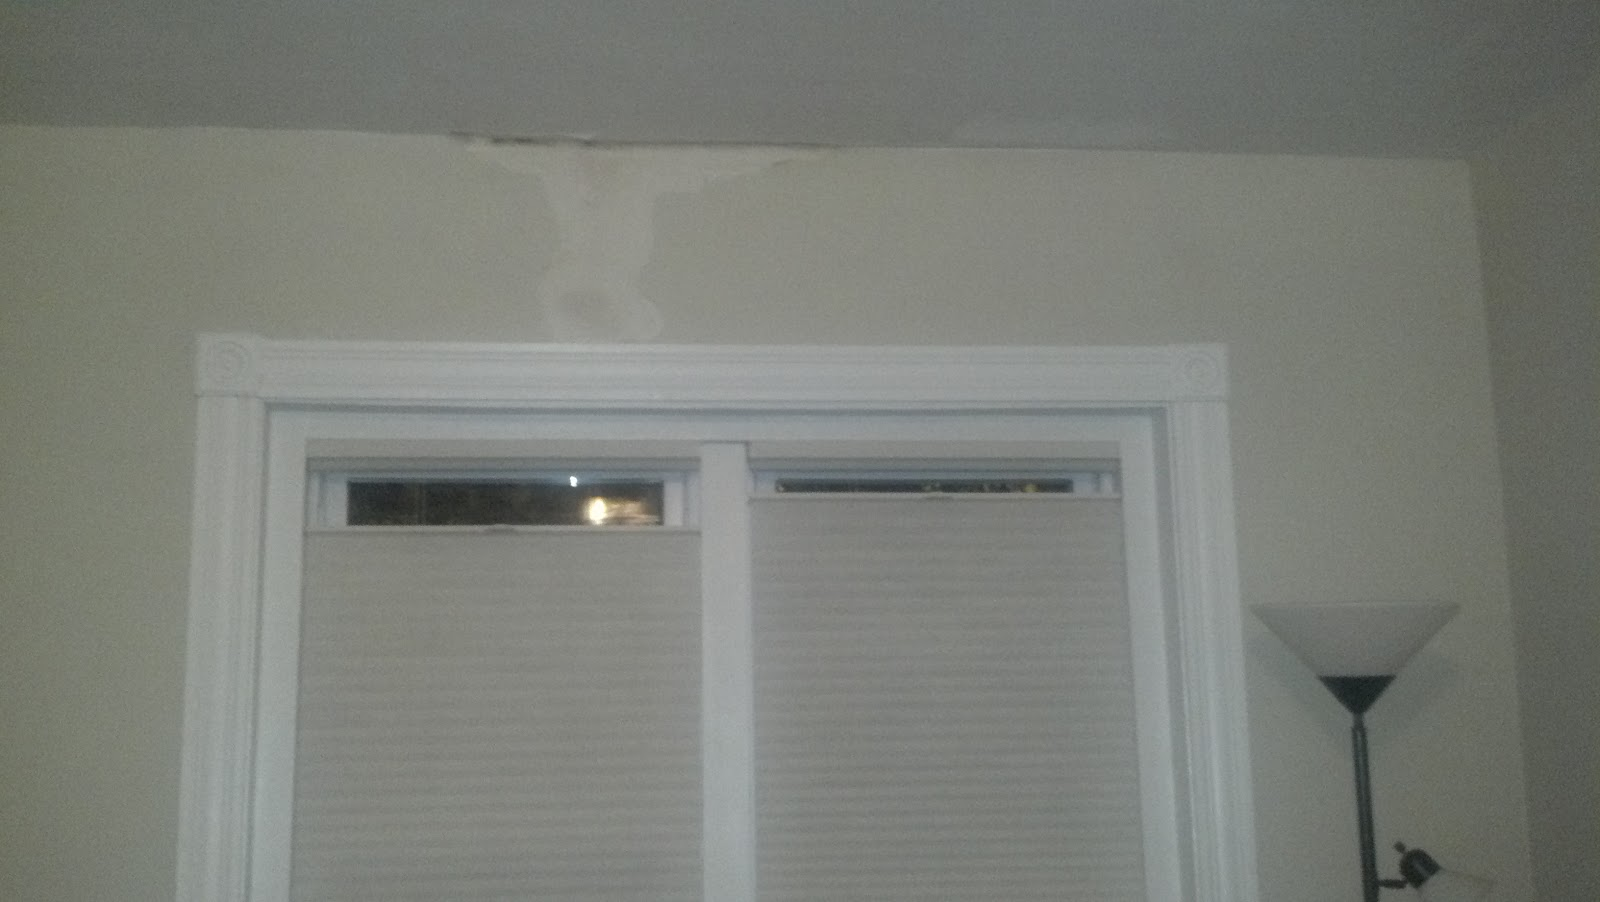 My Old Kentucky Home in DC: Water Damage Repaired? #867F45